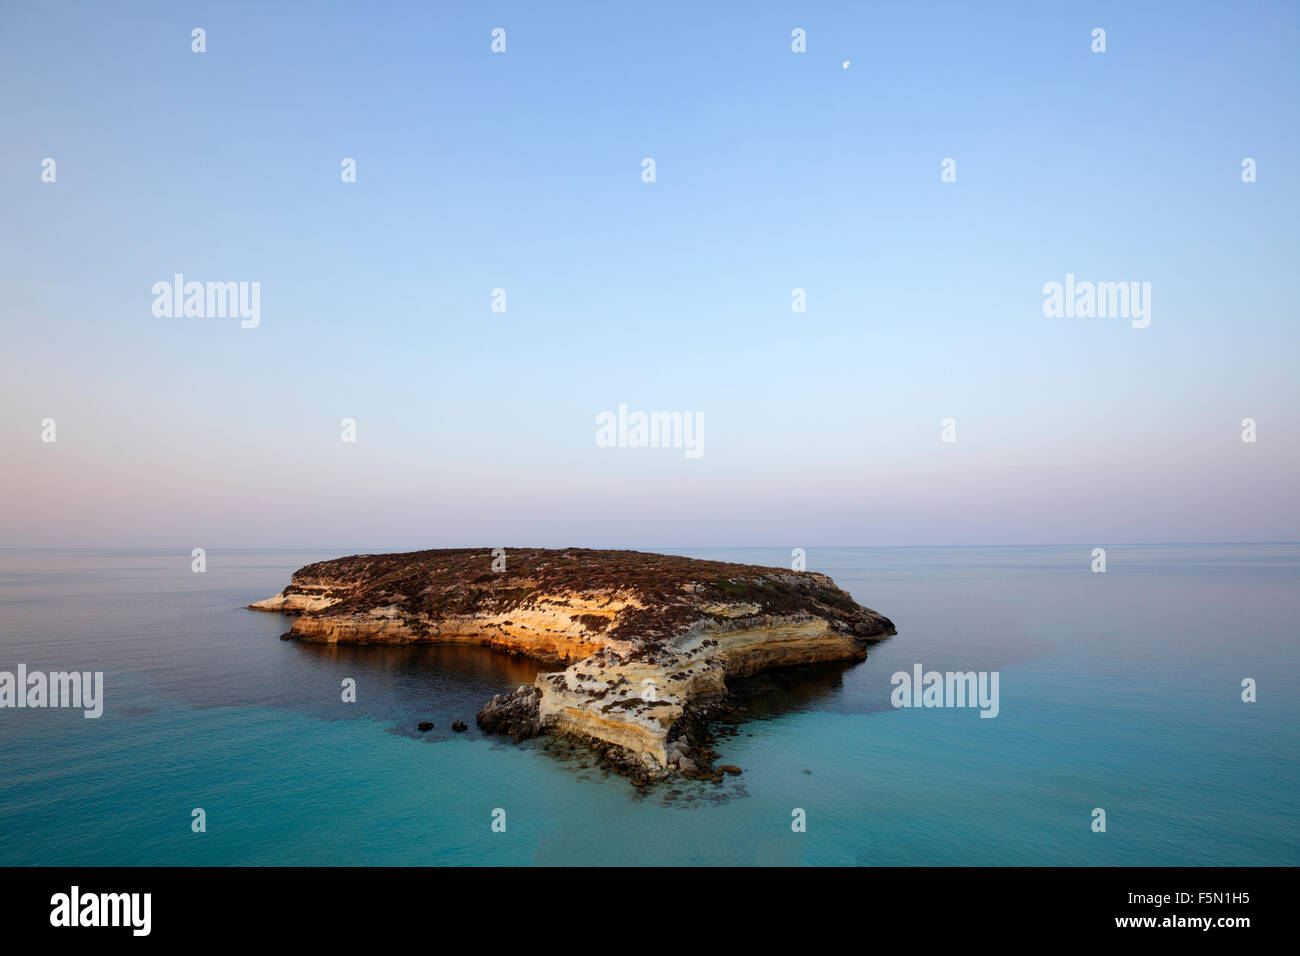 Island of Rabbits in Lampedusa, Sicily, Italy - Stock Image